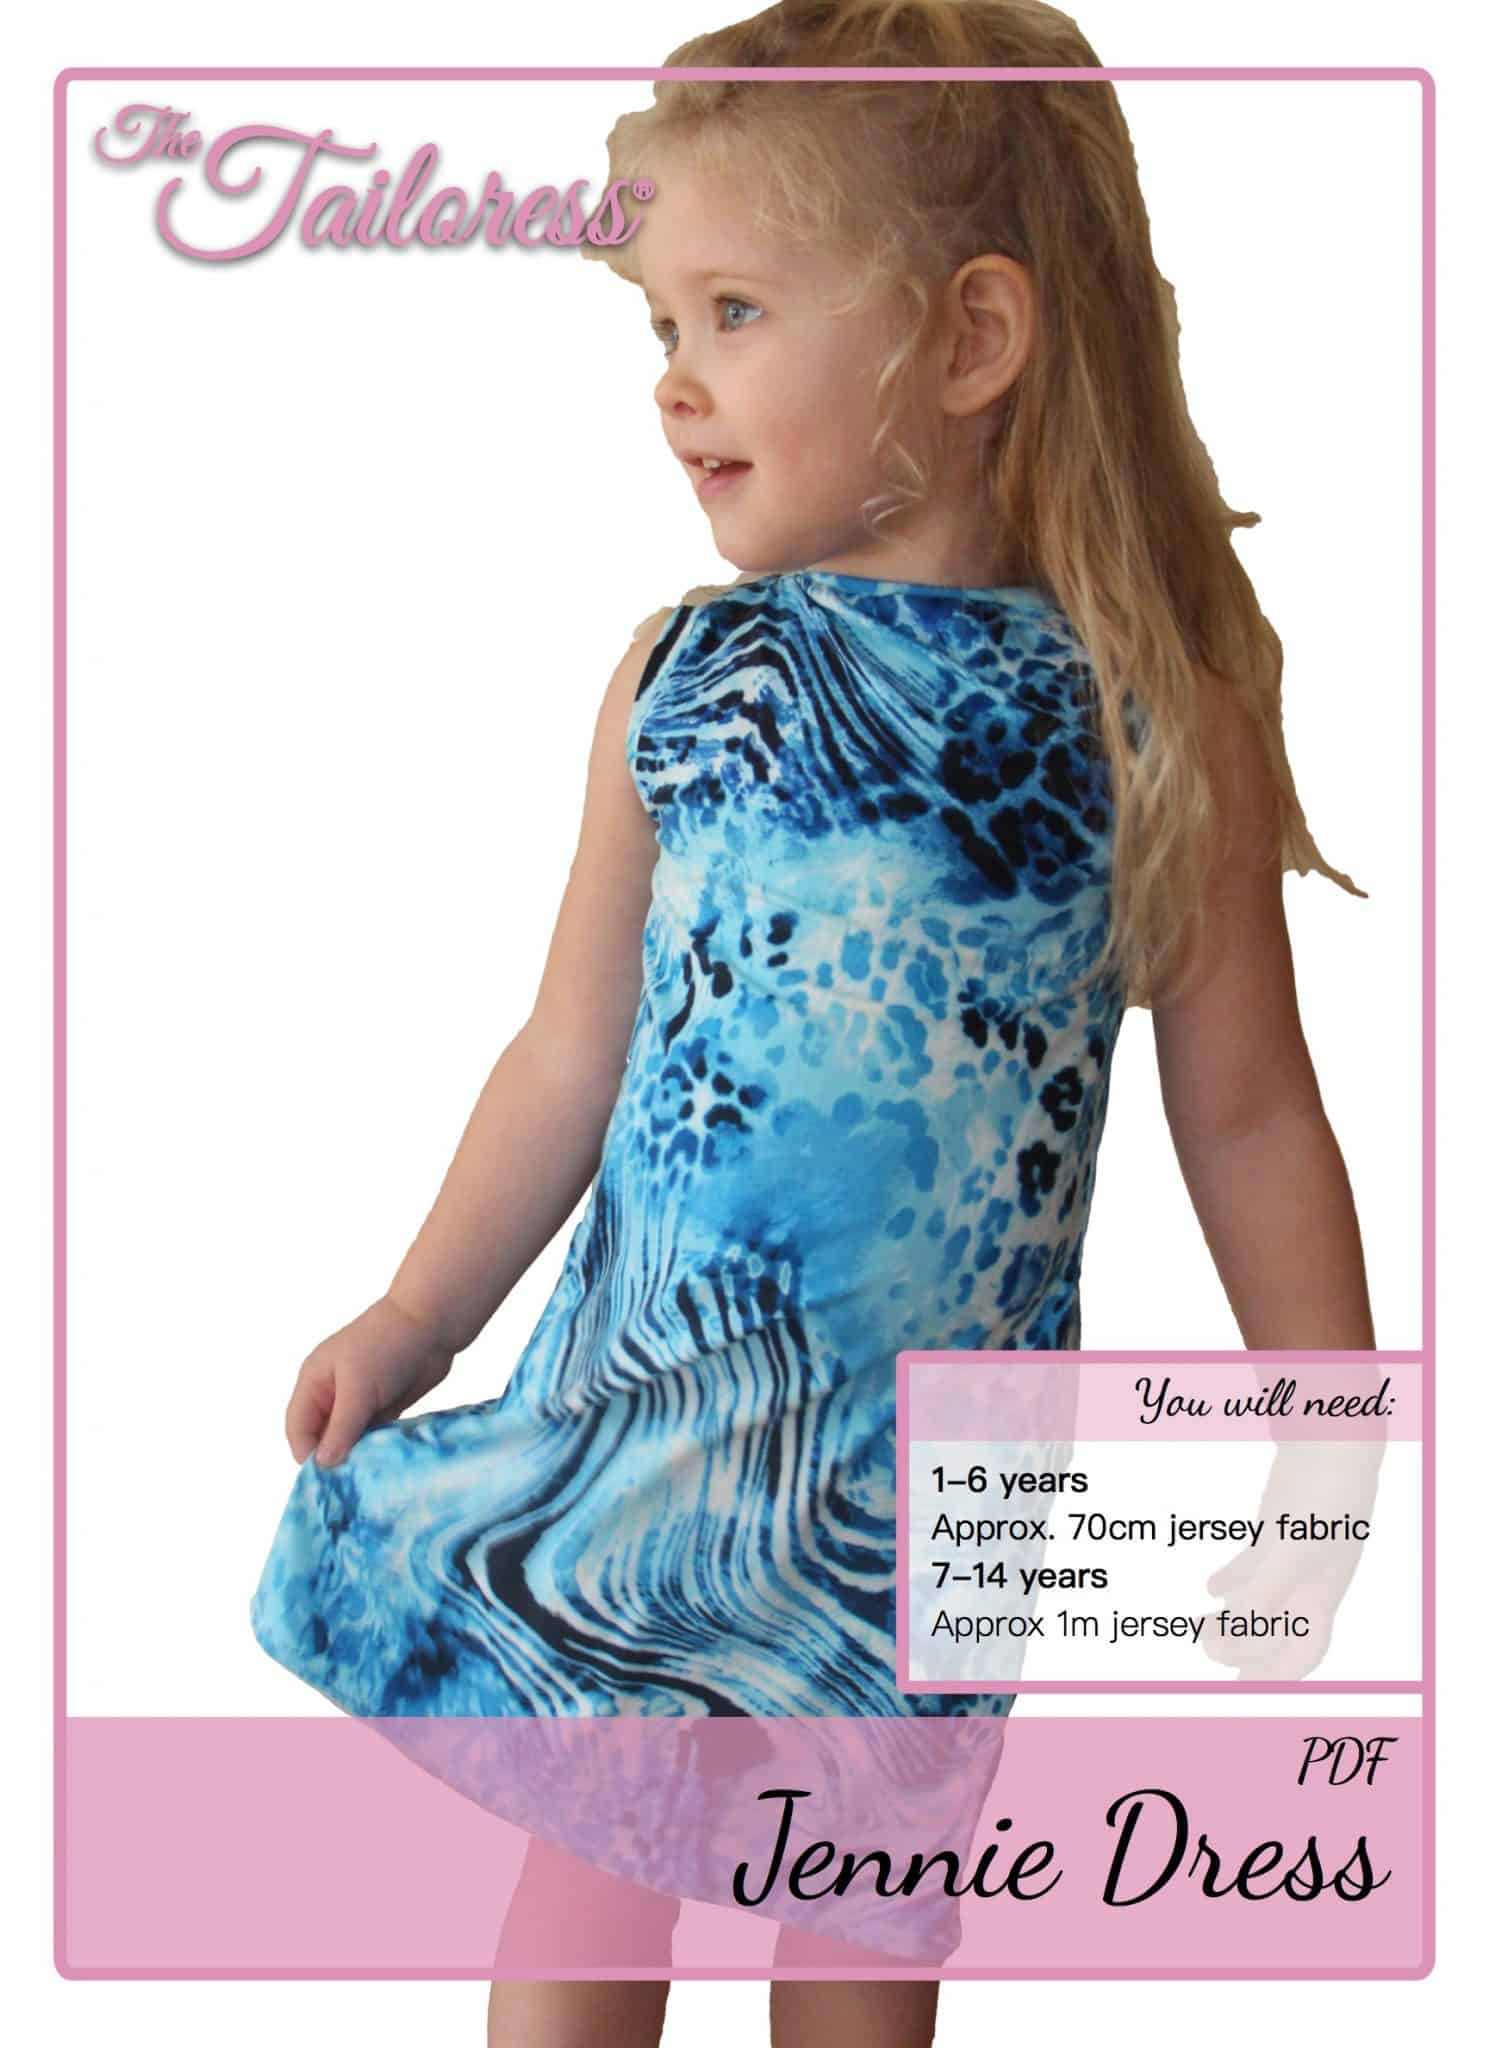 The Tailoress PDF Sewing Patterns - Jennie Dress Tutorial